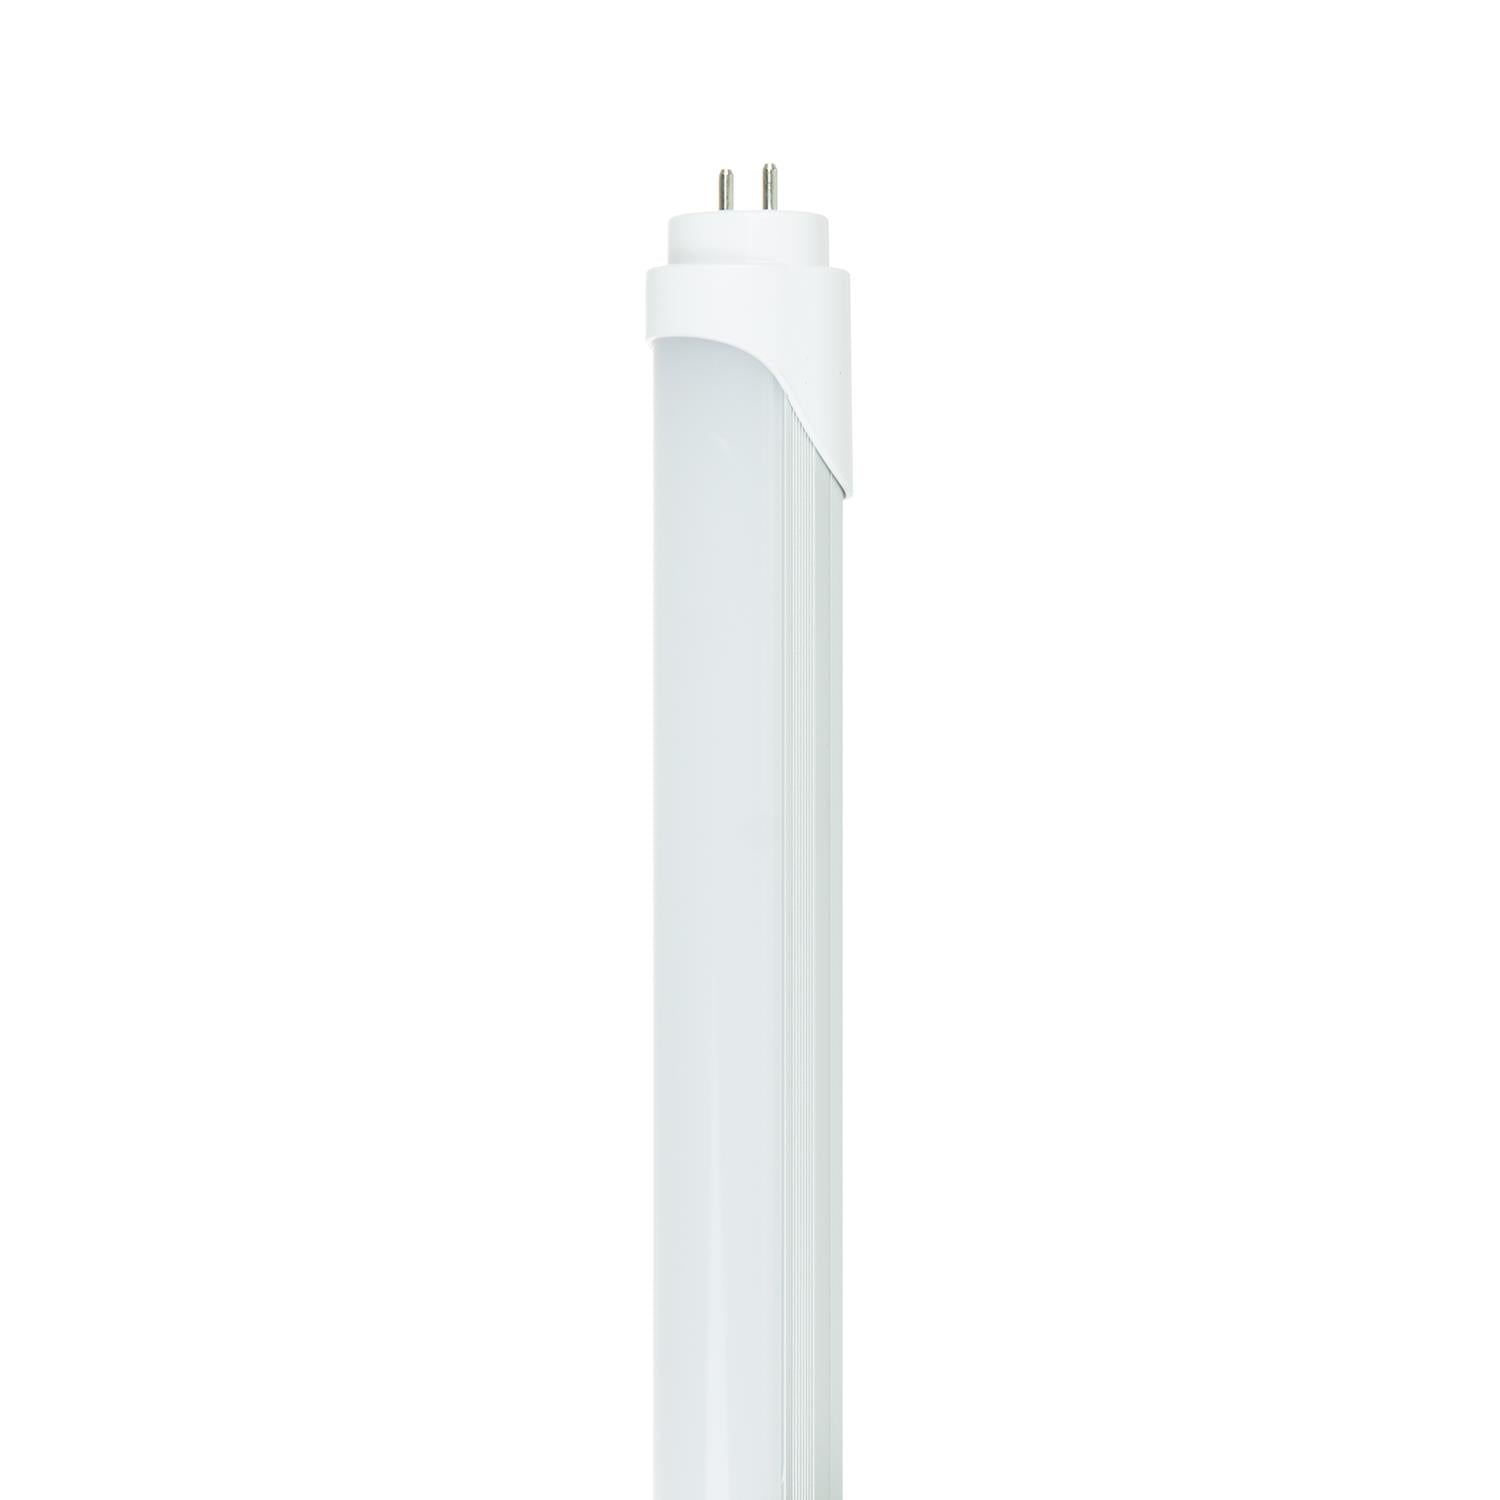 SUNLITE 88008-SU T8 LED Straight Tube 1800 Lumens Medium Bi-Pin Base Super White